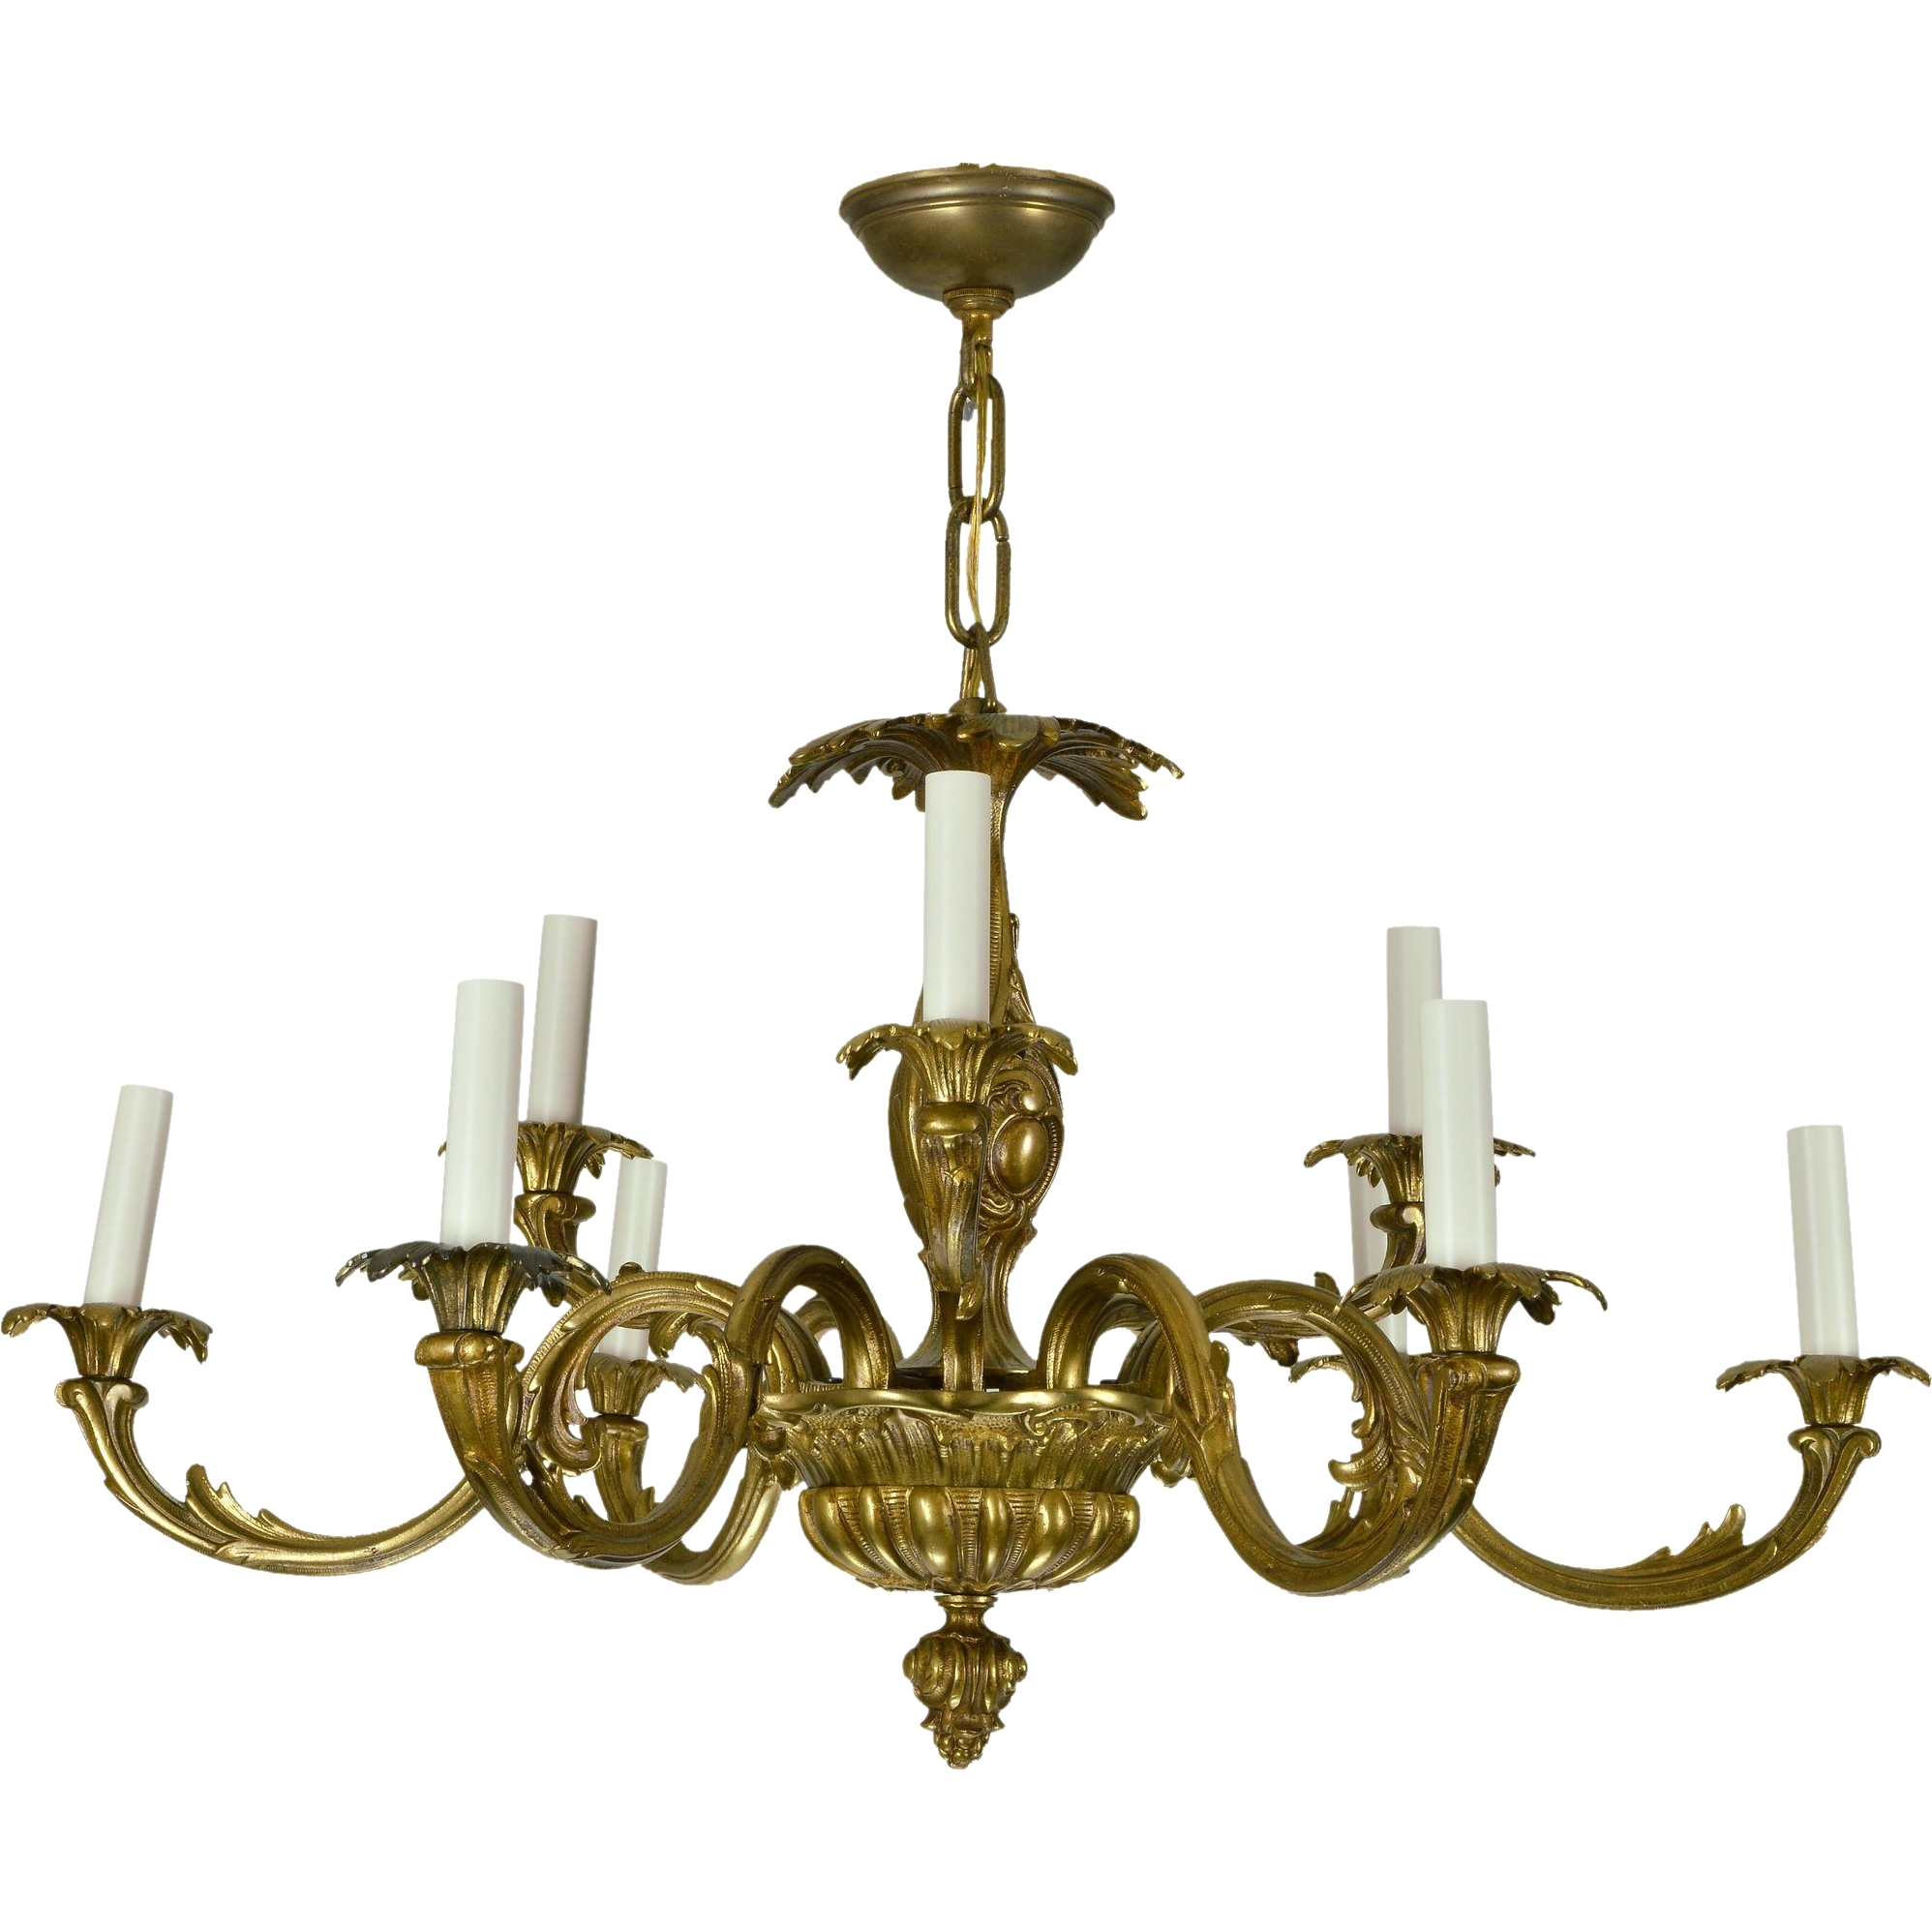 Home Design : Graceful Antique Brass Chandeliers Vintage Chandelier Within Most Recent Vintage Brass Chandeliers (View 7 of 15)